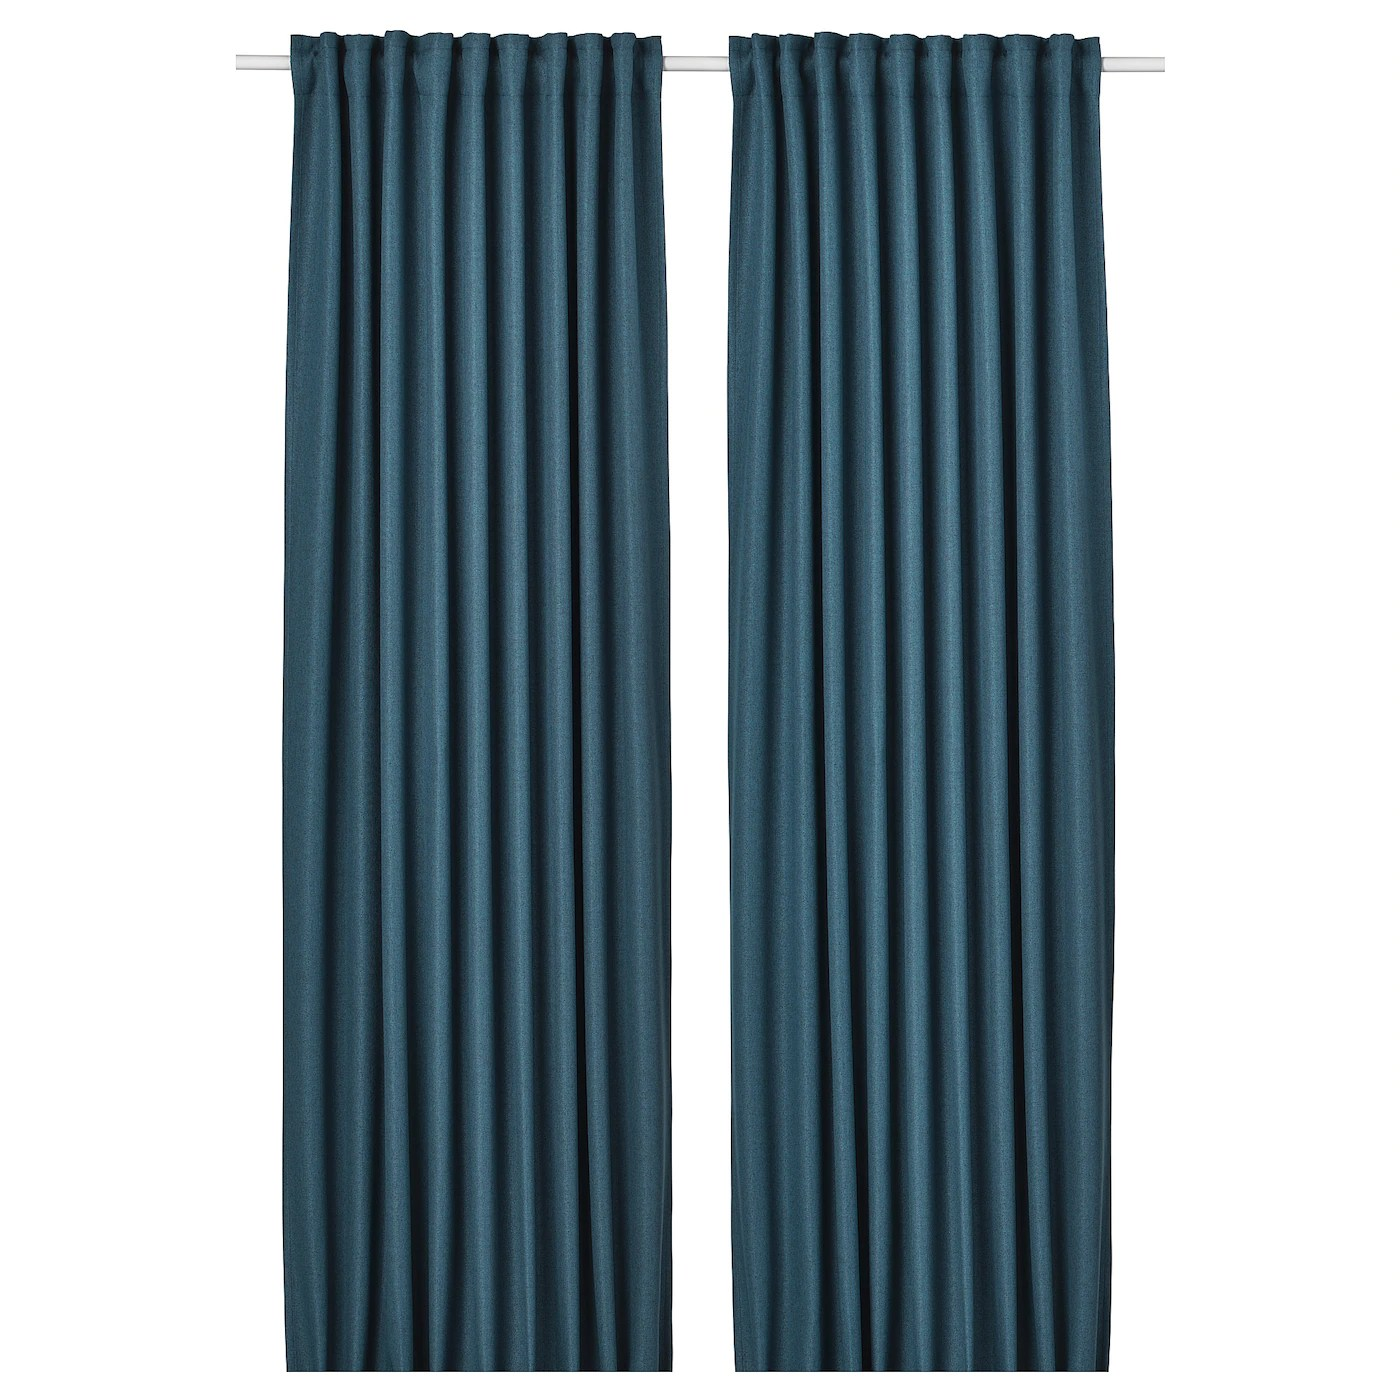 Annakajsa Room Darkening Curtains 1 Pair Blue Ikea - Ikea Vorhang Annakajsa